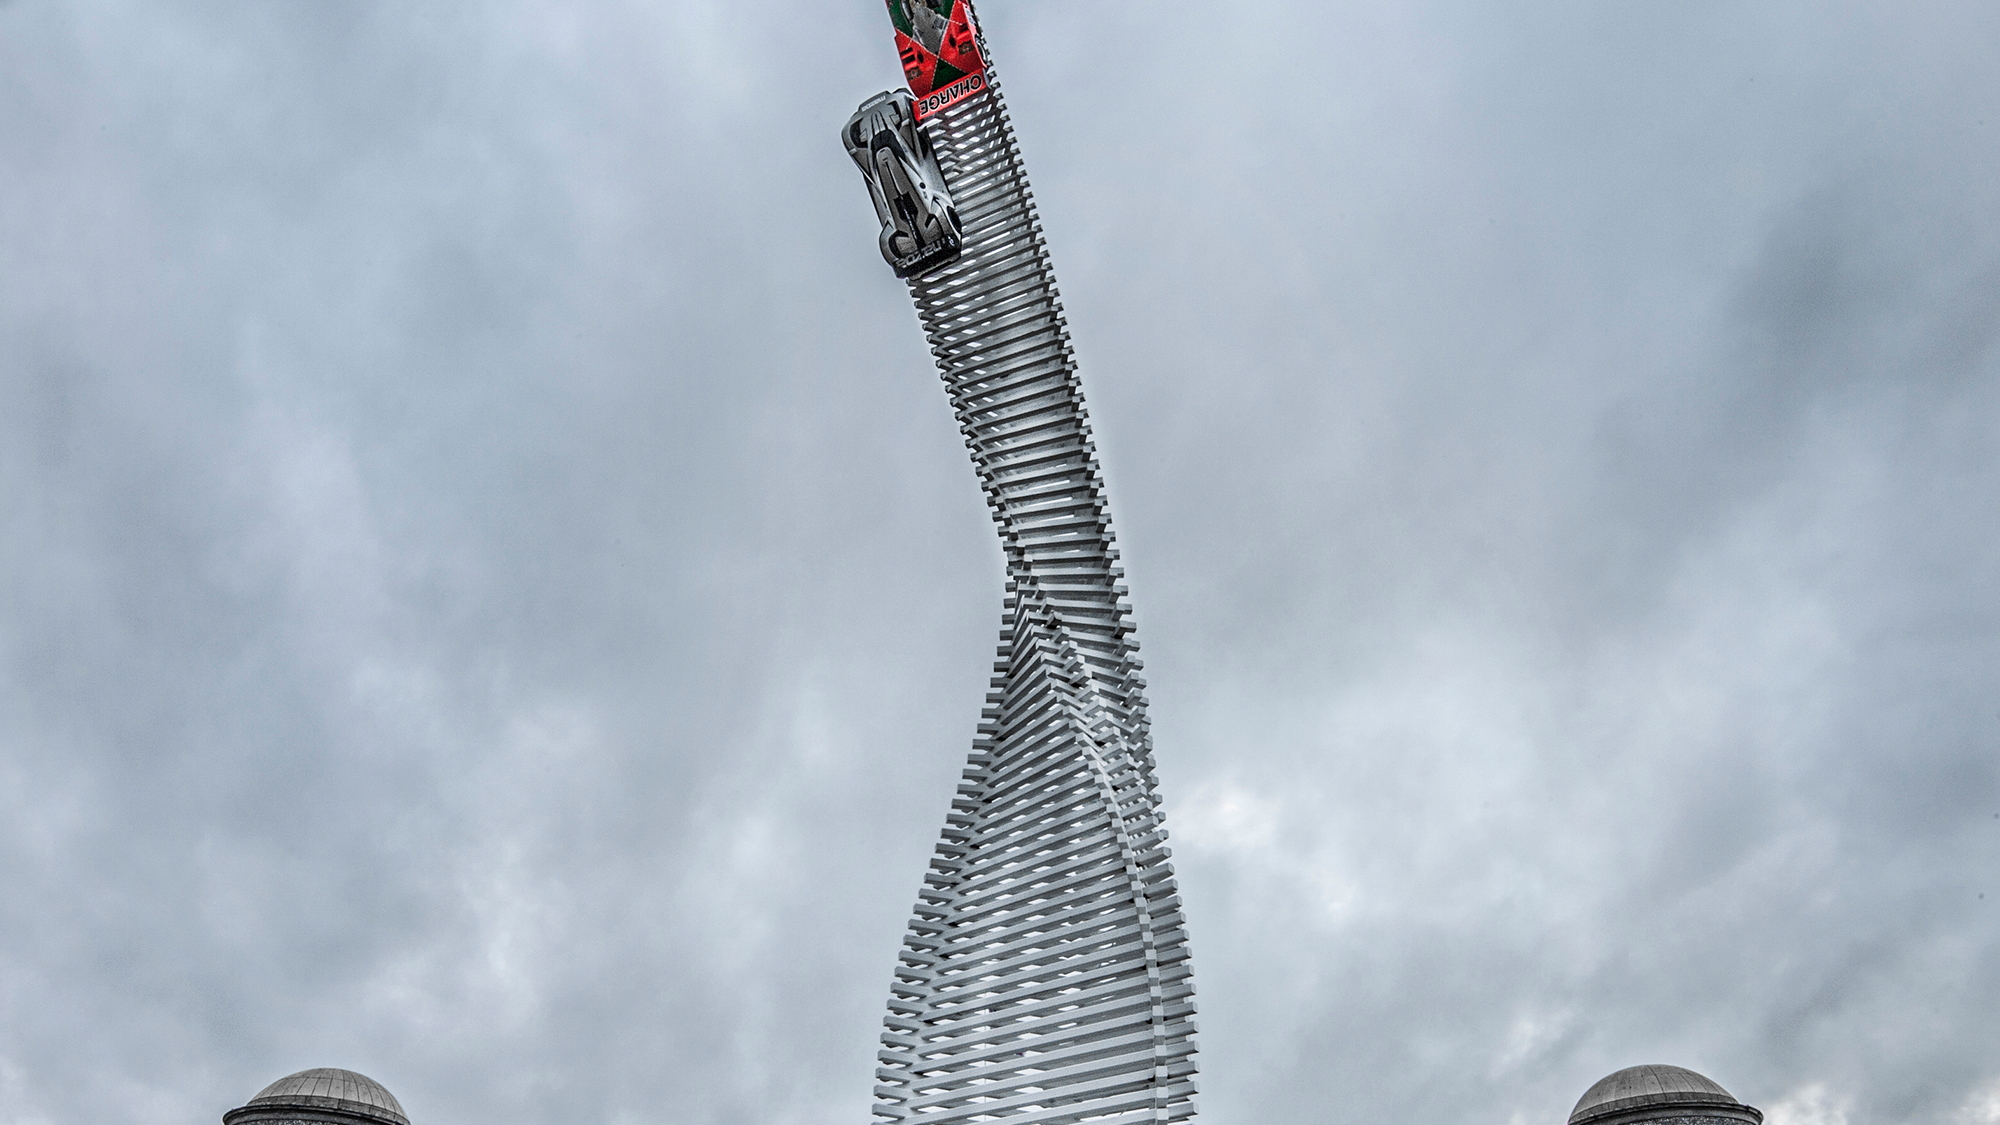 2015 Goodwood Festival of Speed Central Feature honors Mazda's motorsports heritage